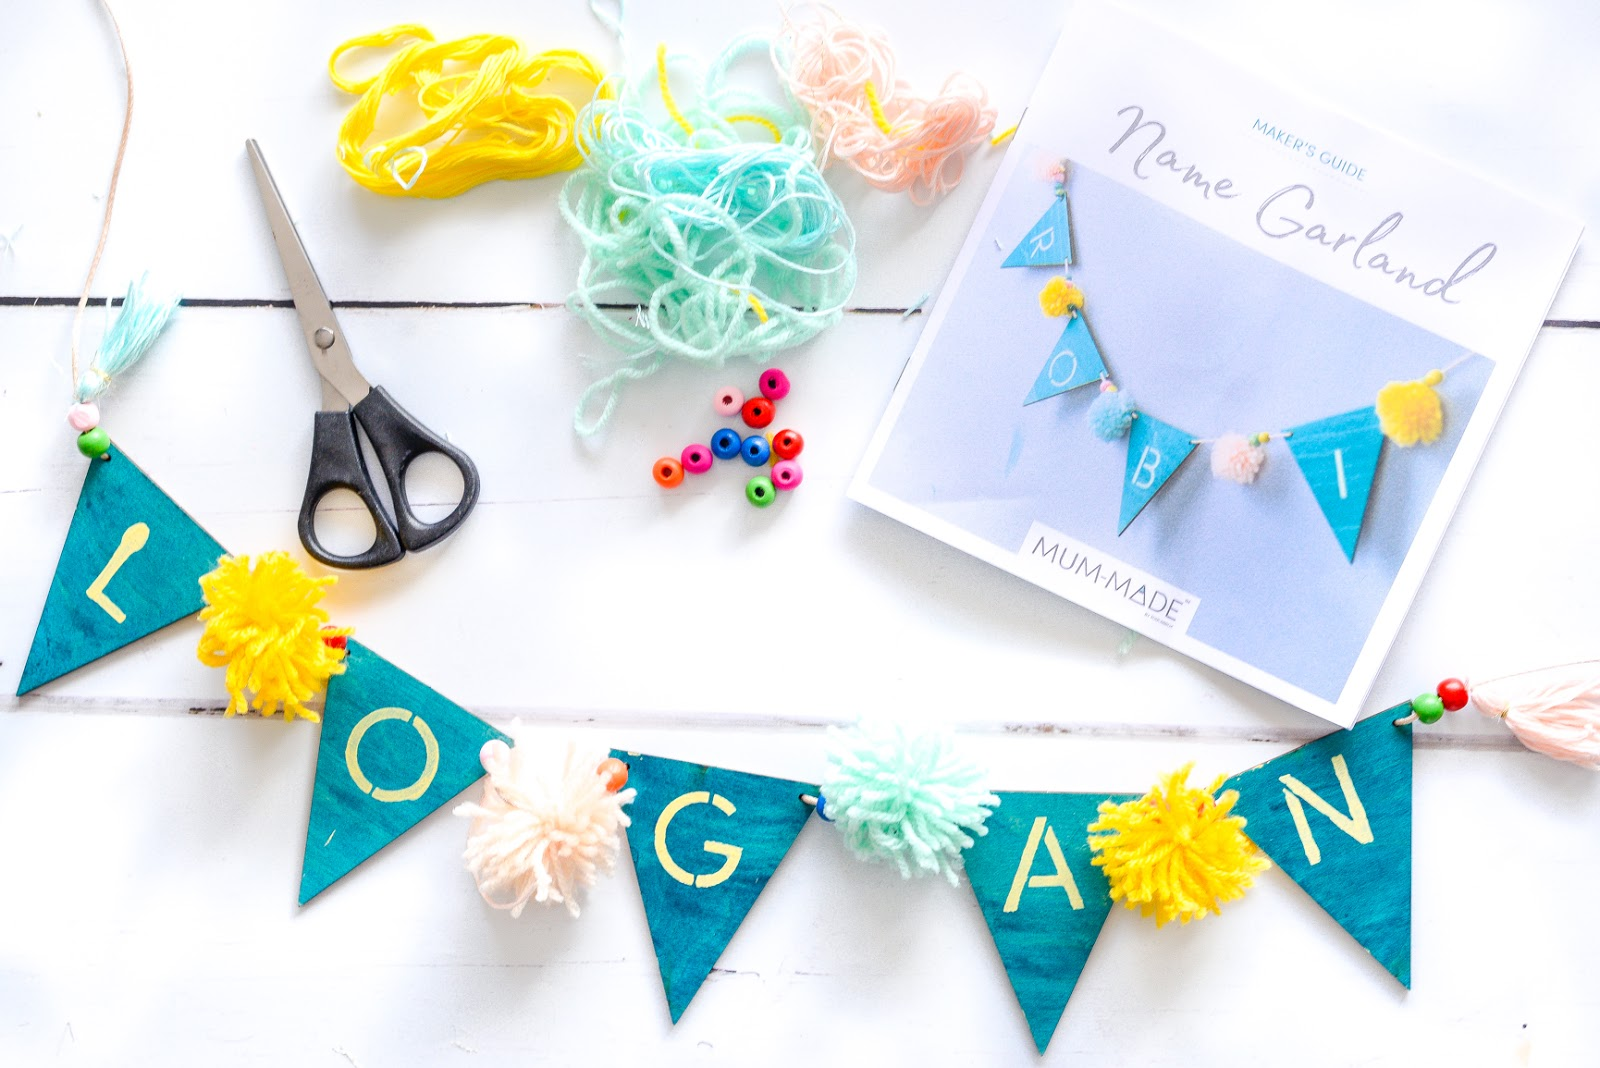 Name Garland, MUM-MADE review, MUM-MADE craft, DIY nursery decorations, DIY baby keepsakes